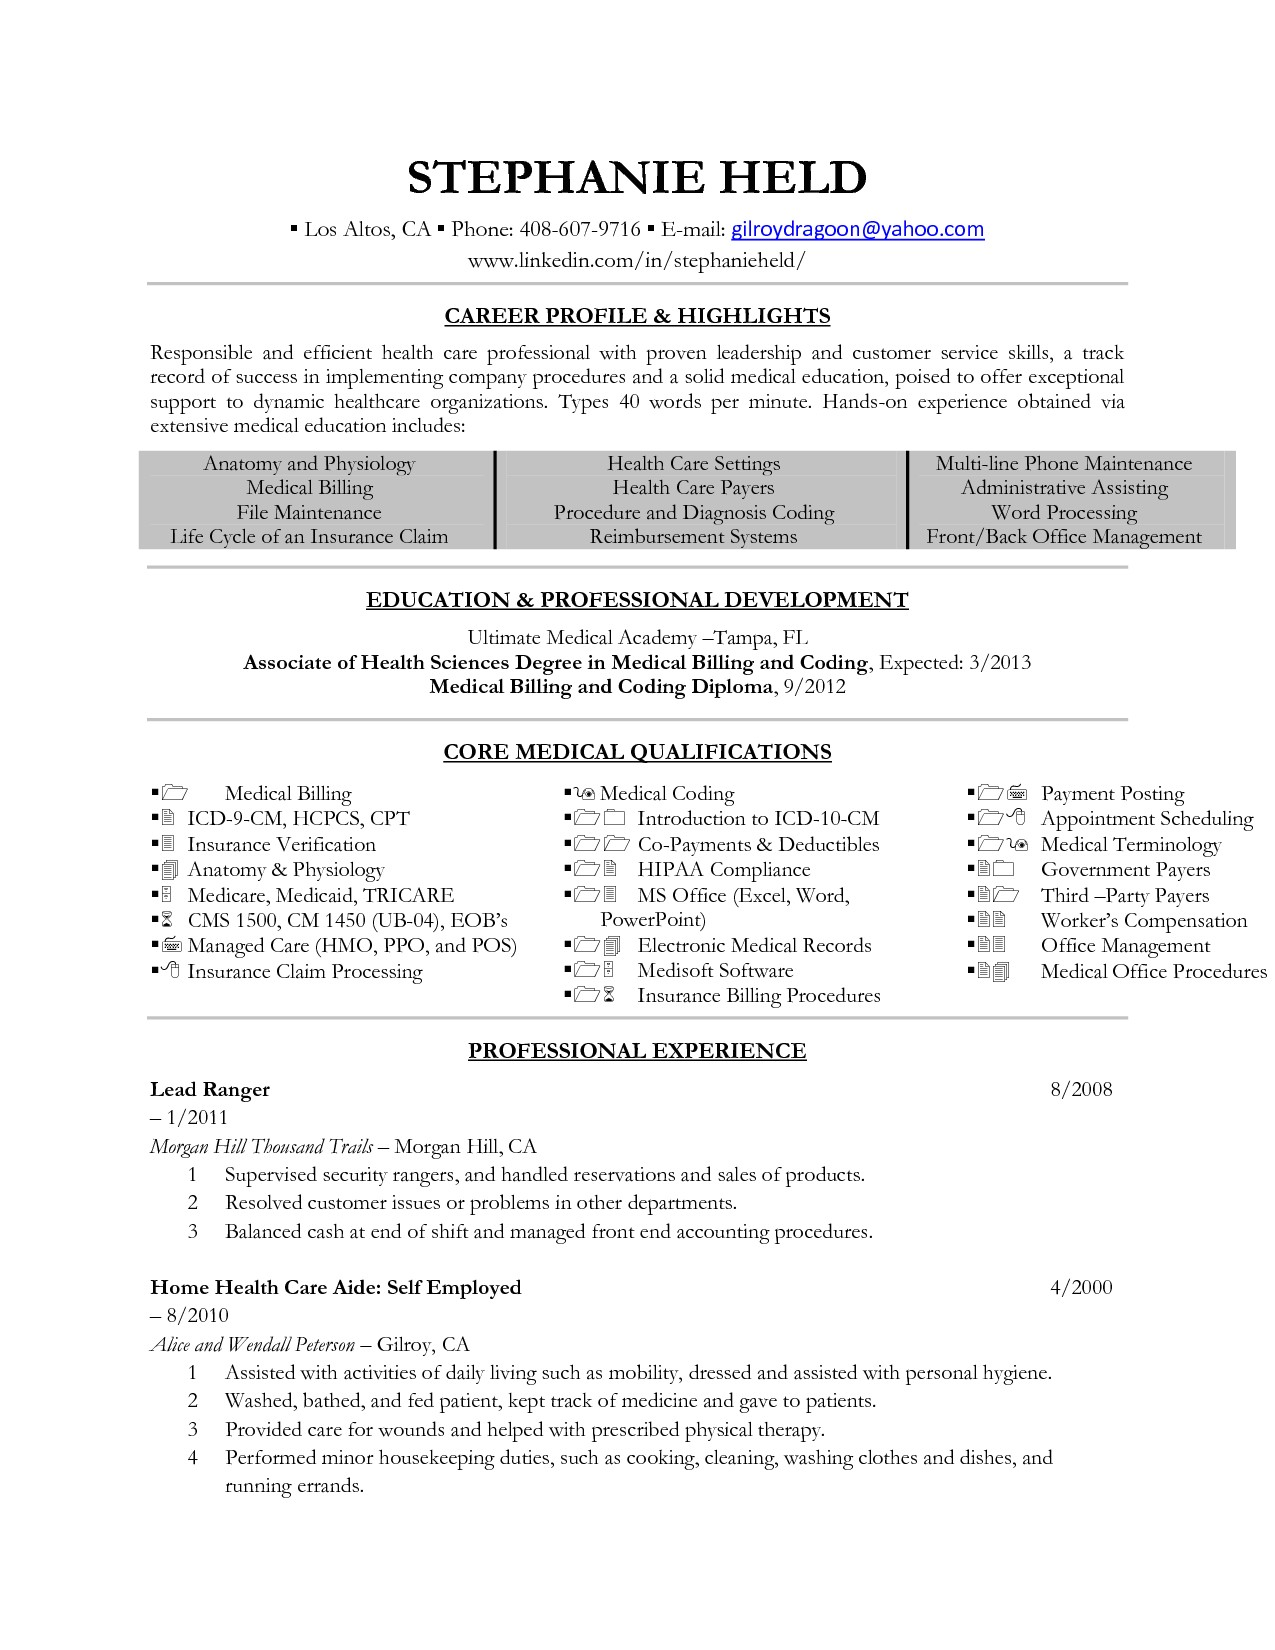 medical billing coding resume example